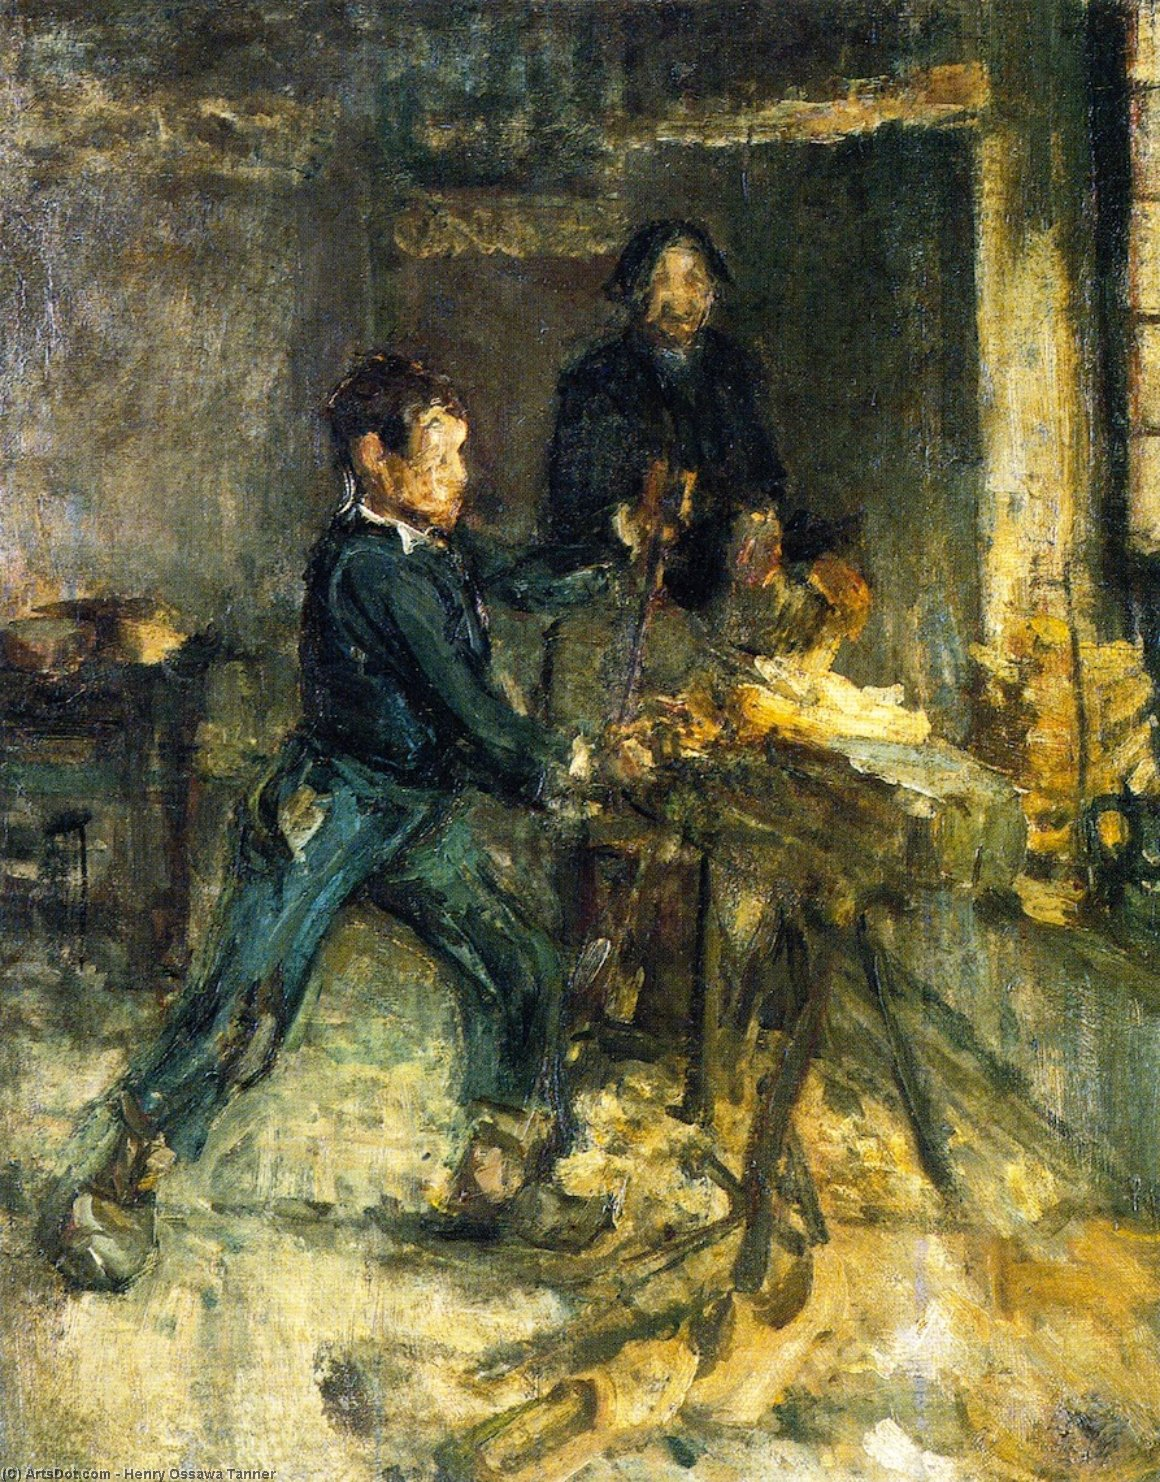 Study for The Young Sabot Maker, Oil On Canvas by Henry Ossawa Tanner (1859-1937, United States)